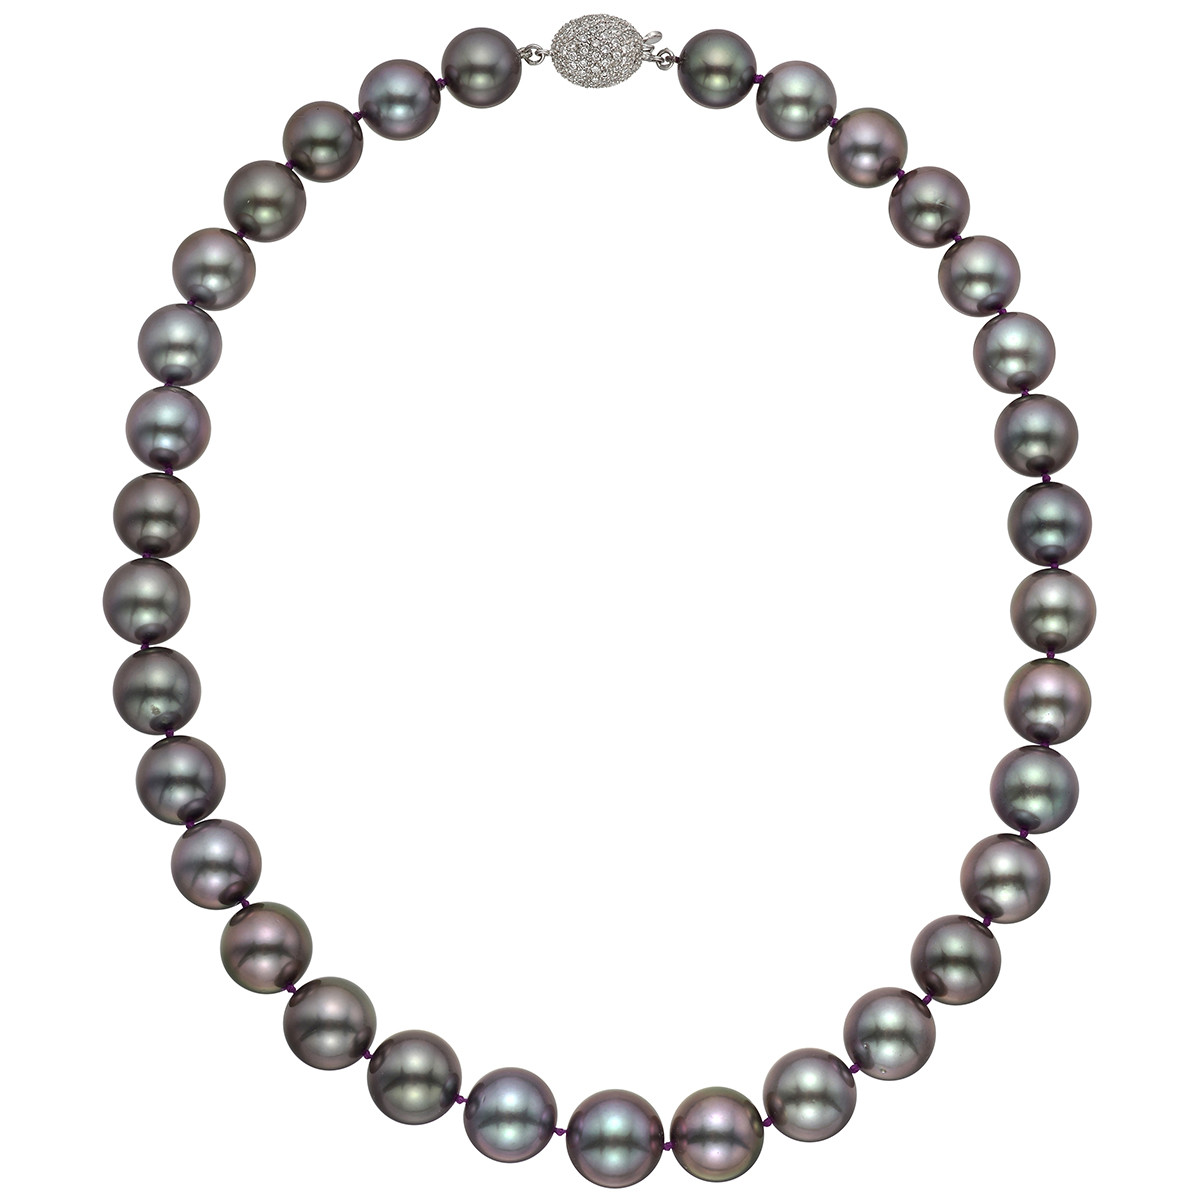 Tahitian Pearl Necklace with Pavé Diamond Clasp